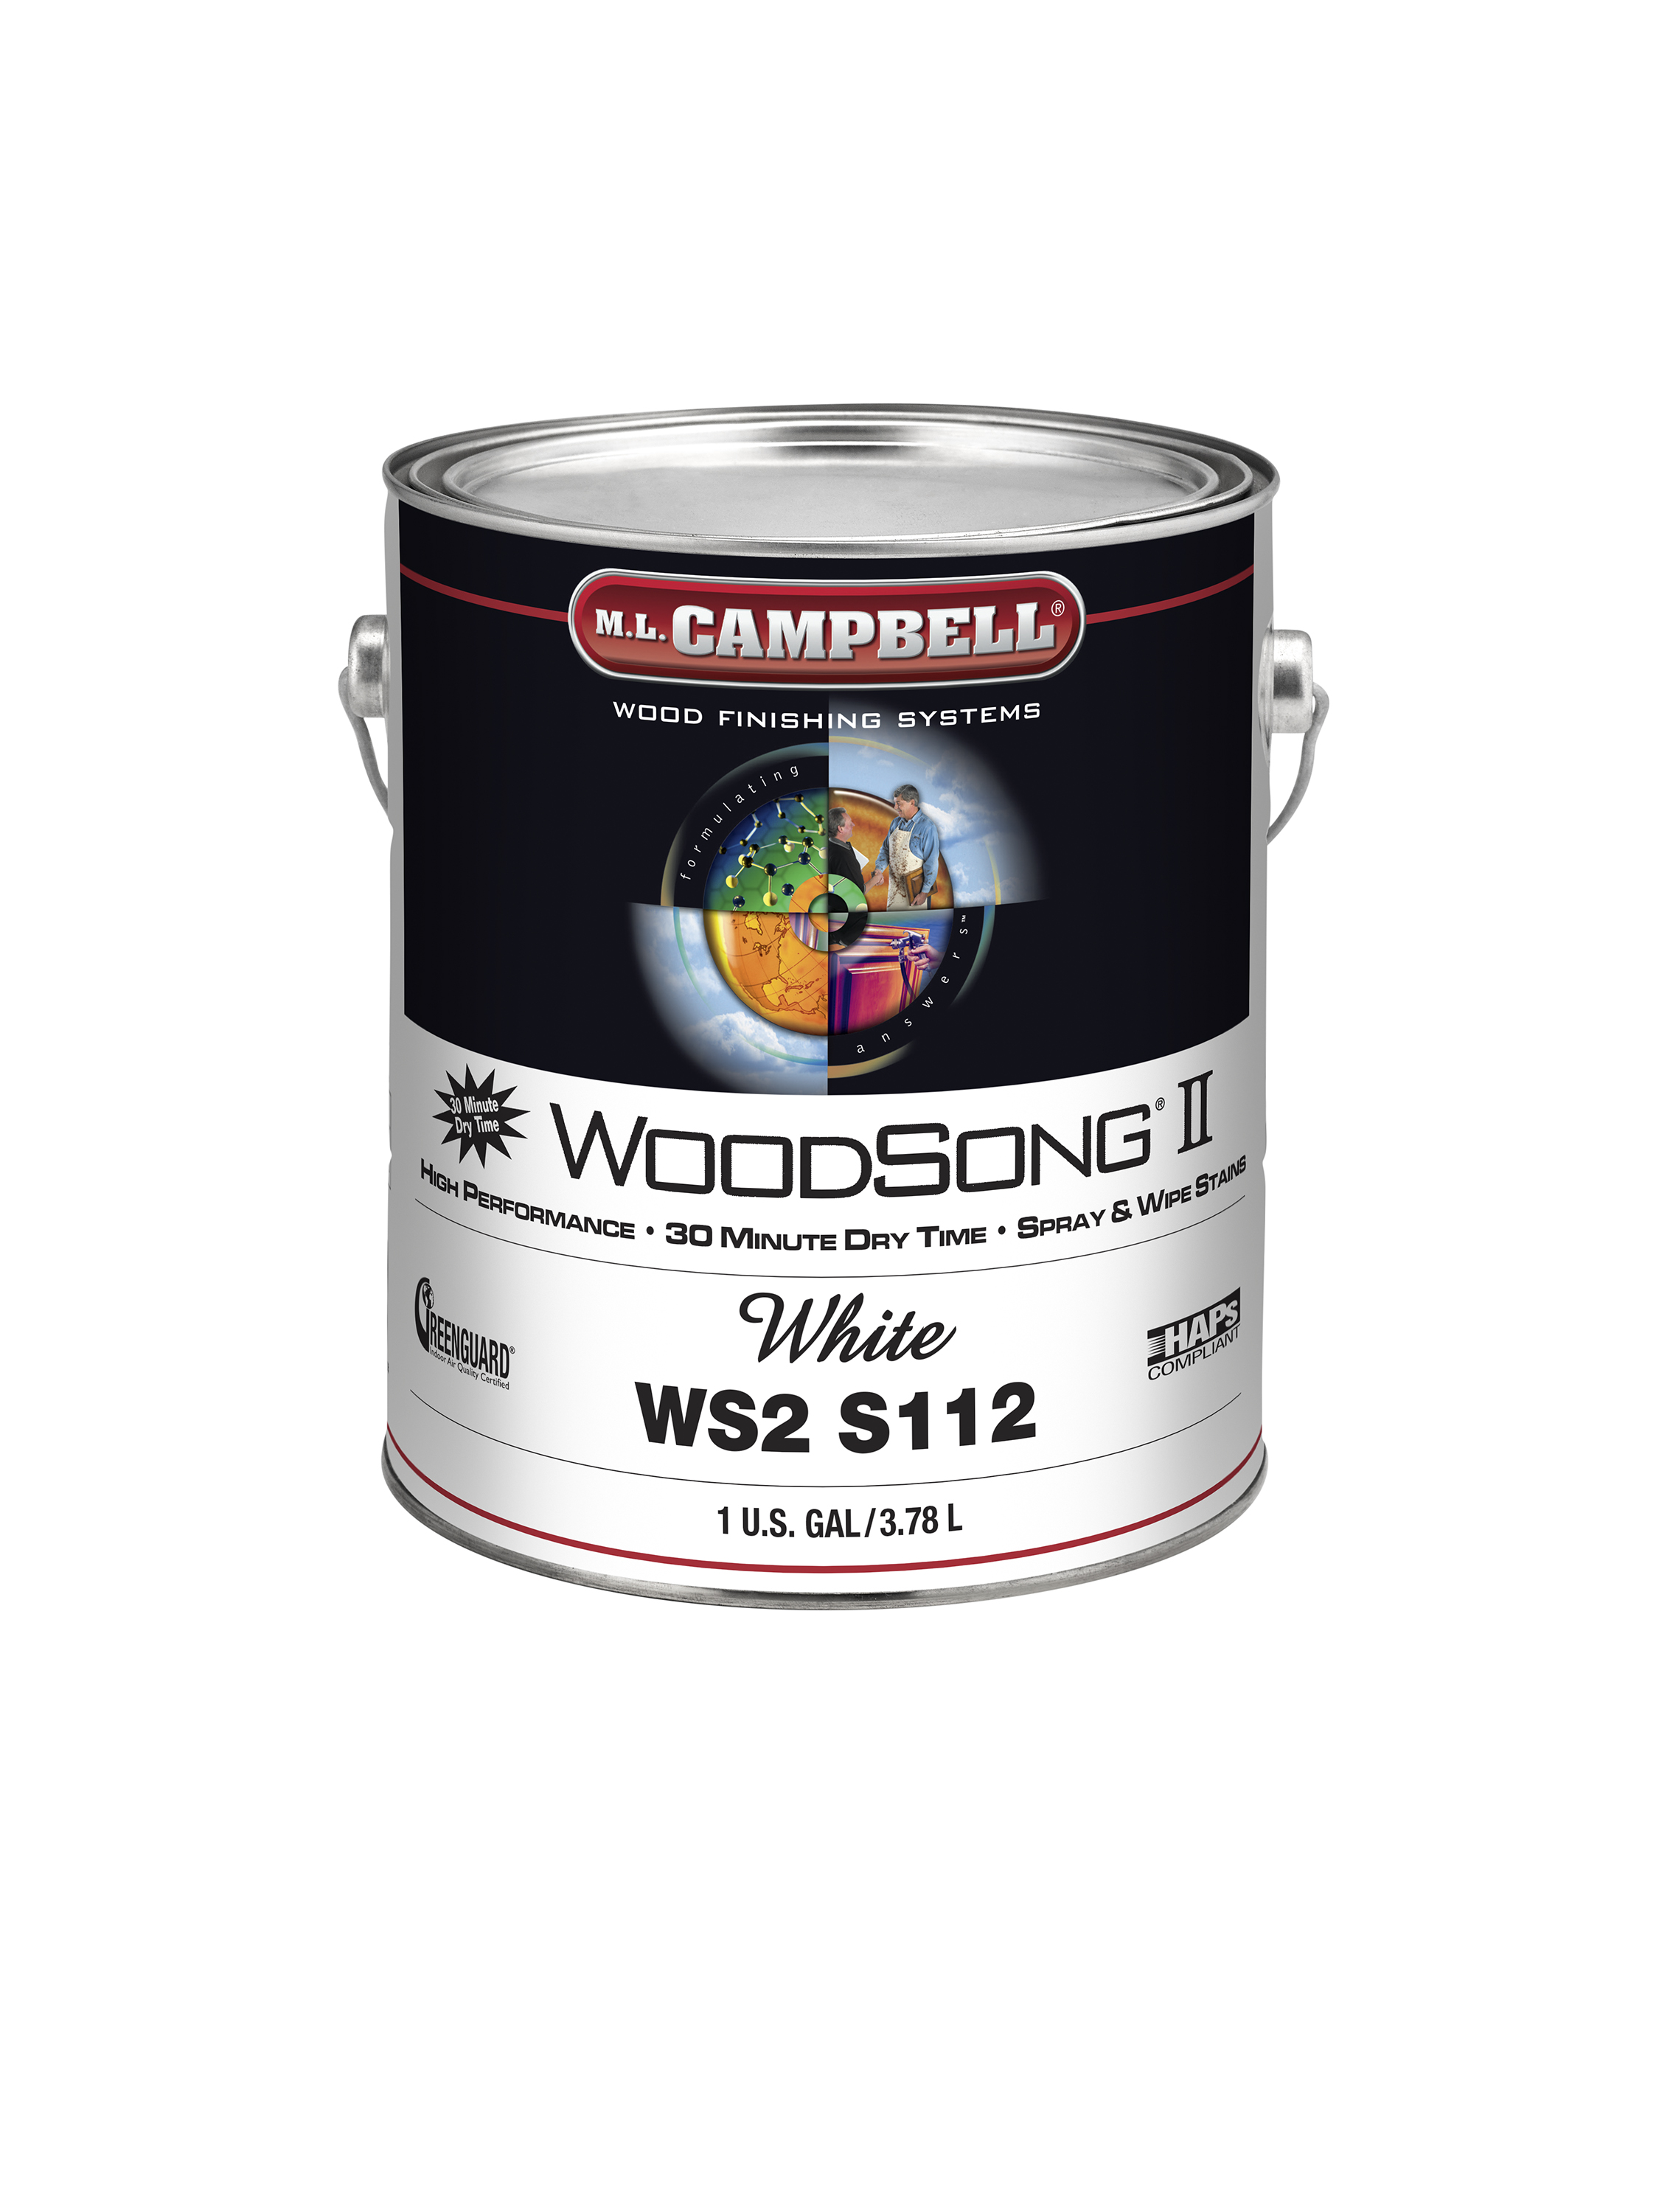 Woodsong Ii 10 Spray And Wipe Stain M L Campbell